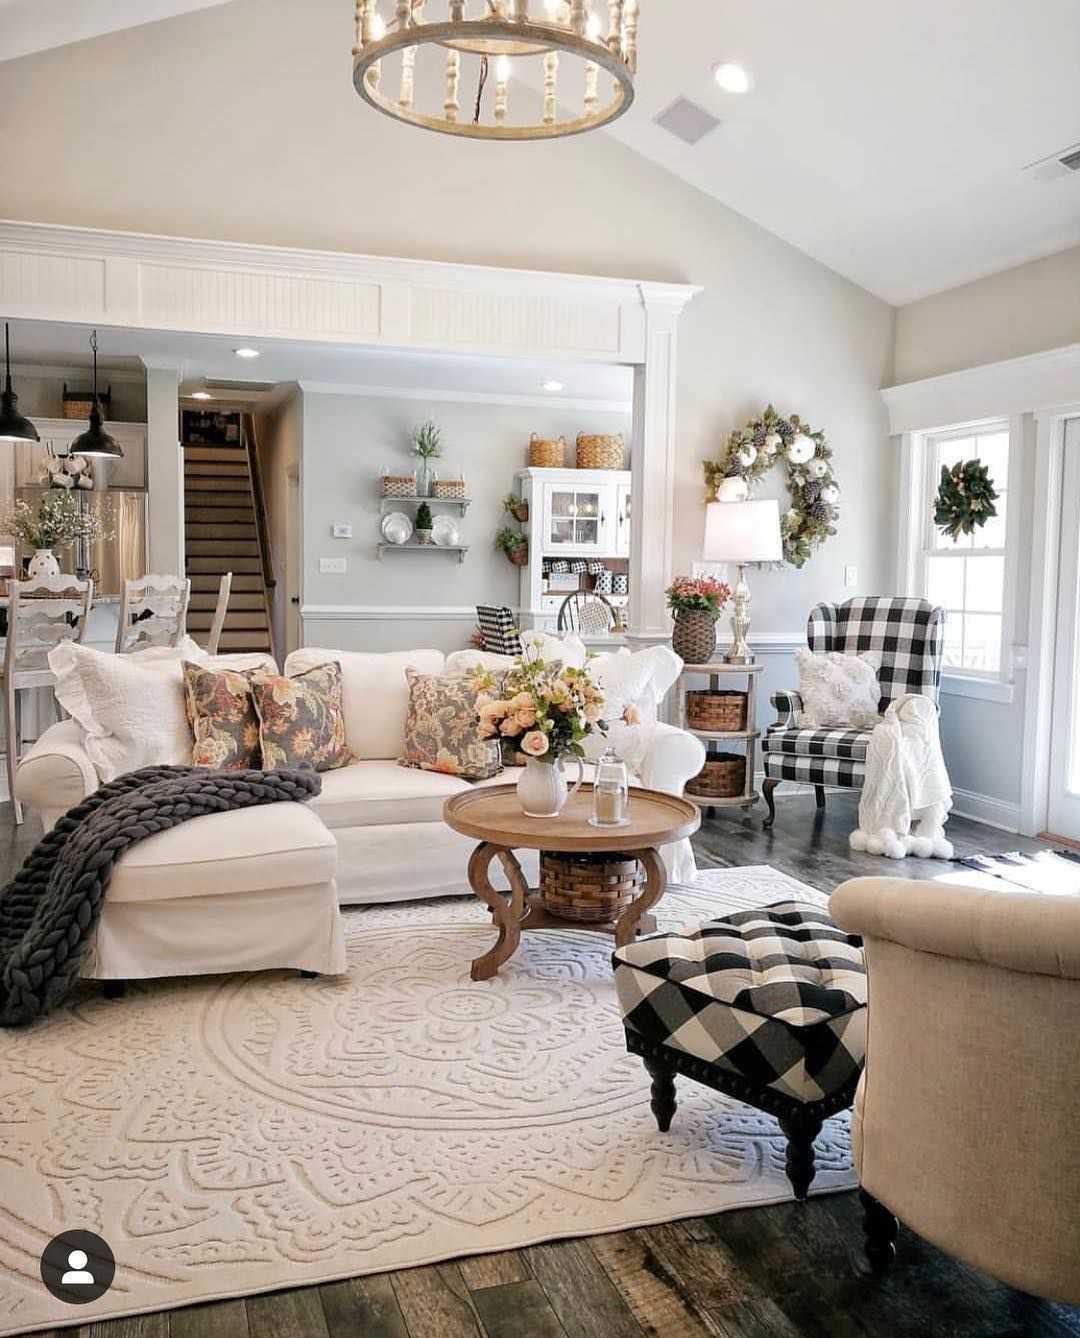 Stylish Farmhouse Home Decor On Instagram Love The Texture In This Rug Br French Country Living Room Farm House Living Room Rustic Farmhouse Living Room